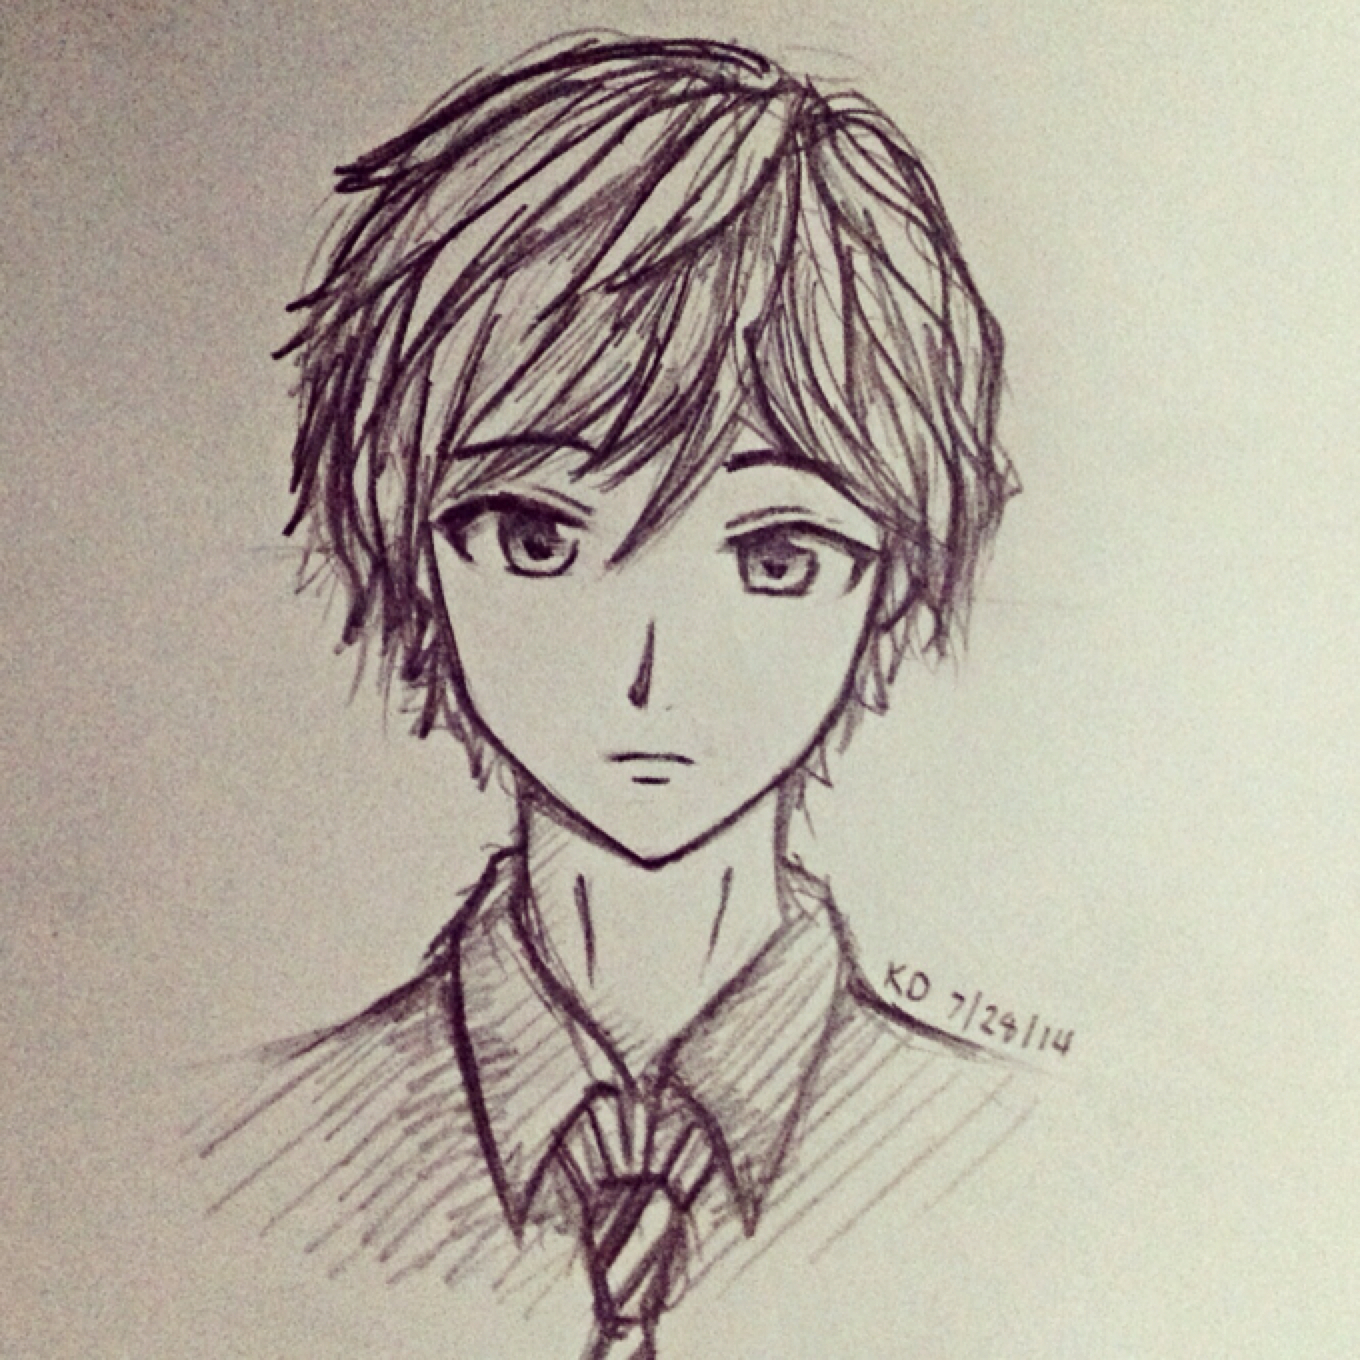 1360x1360 Anime Simple Drawing In Pencil Easy Anime Drawings In Pencil Boy